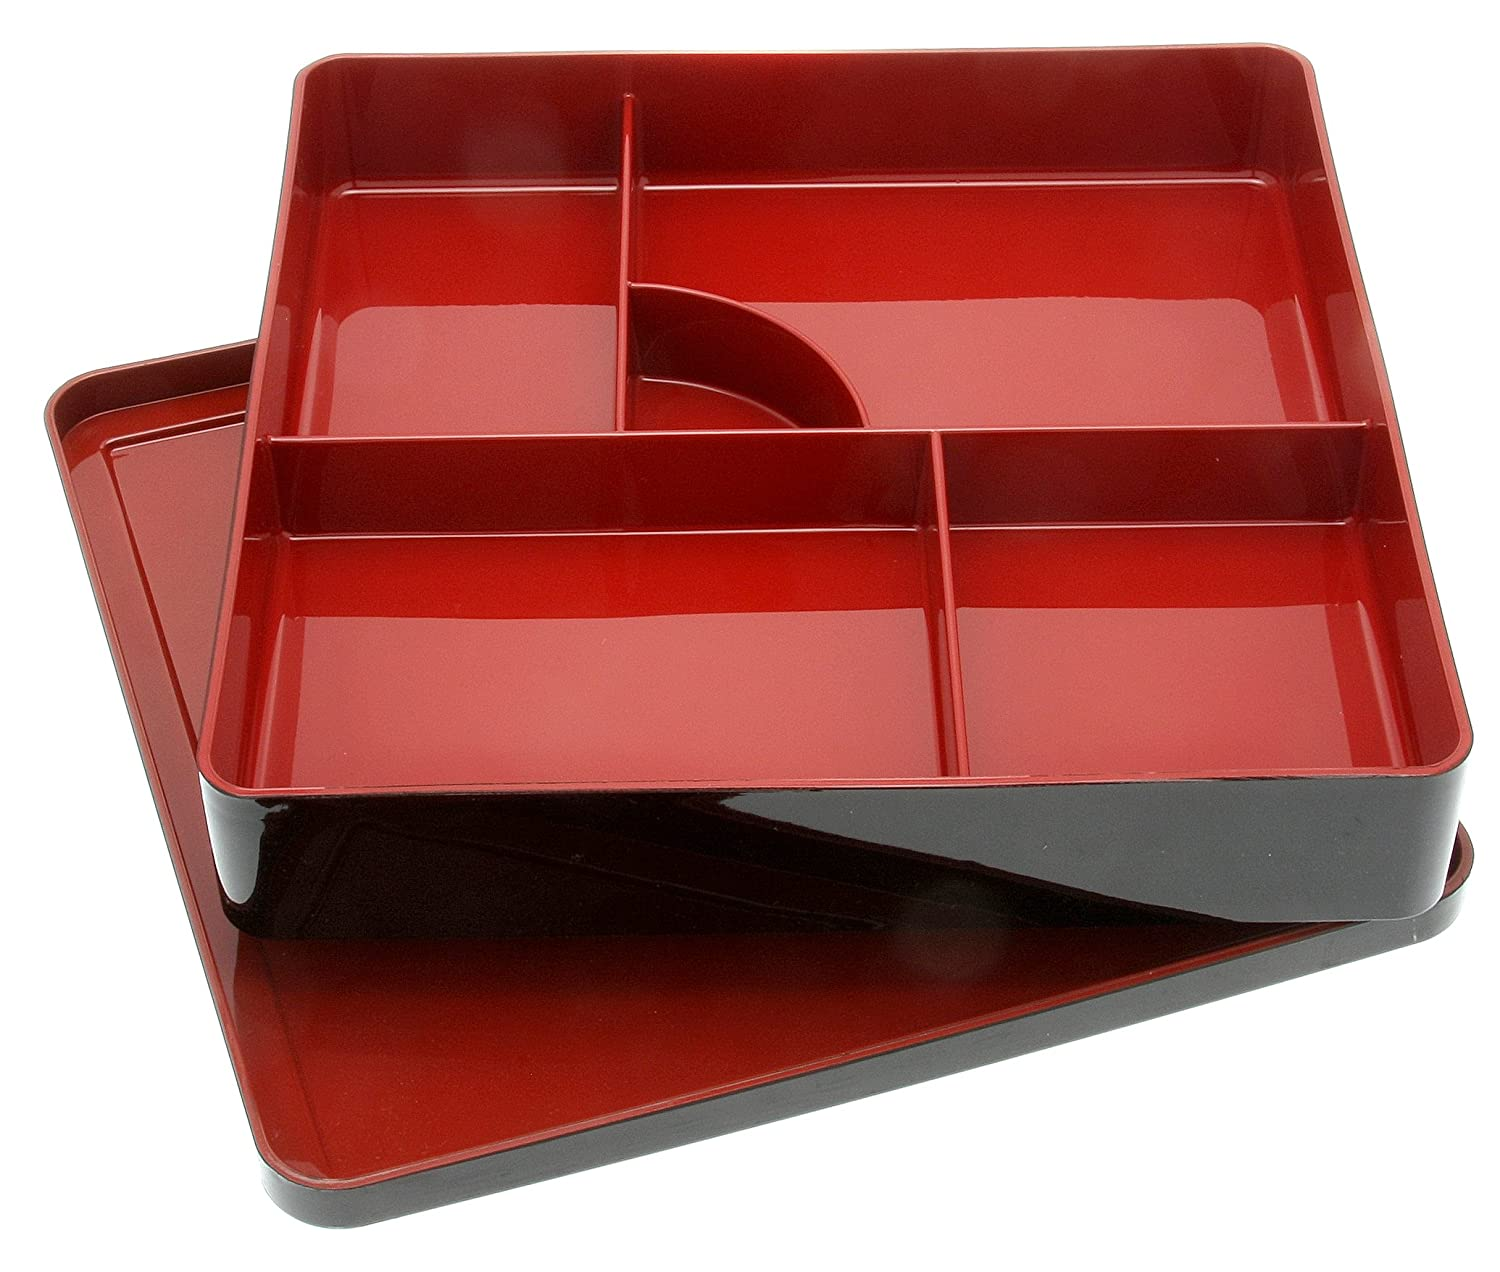 Kotobuki 280-828 Lacquer Japanese Bento Box with 5-Divided Compartments, Lid Included